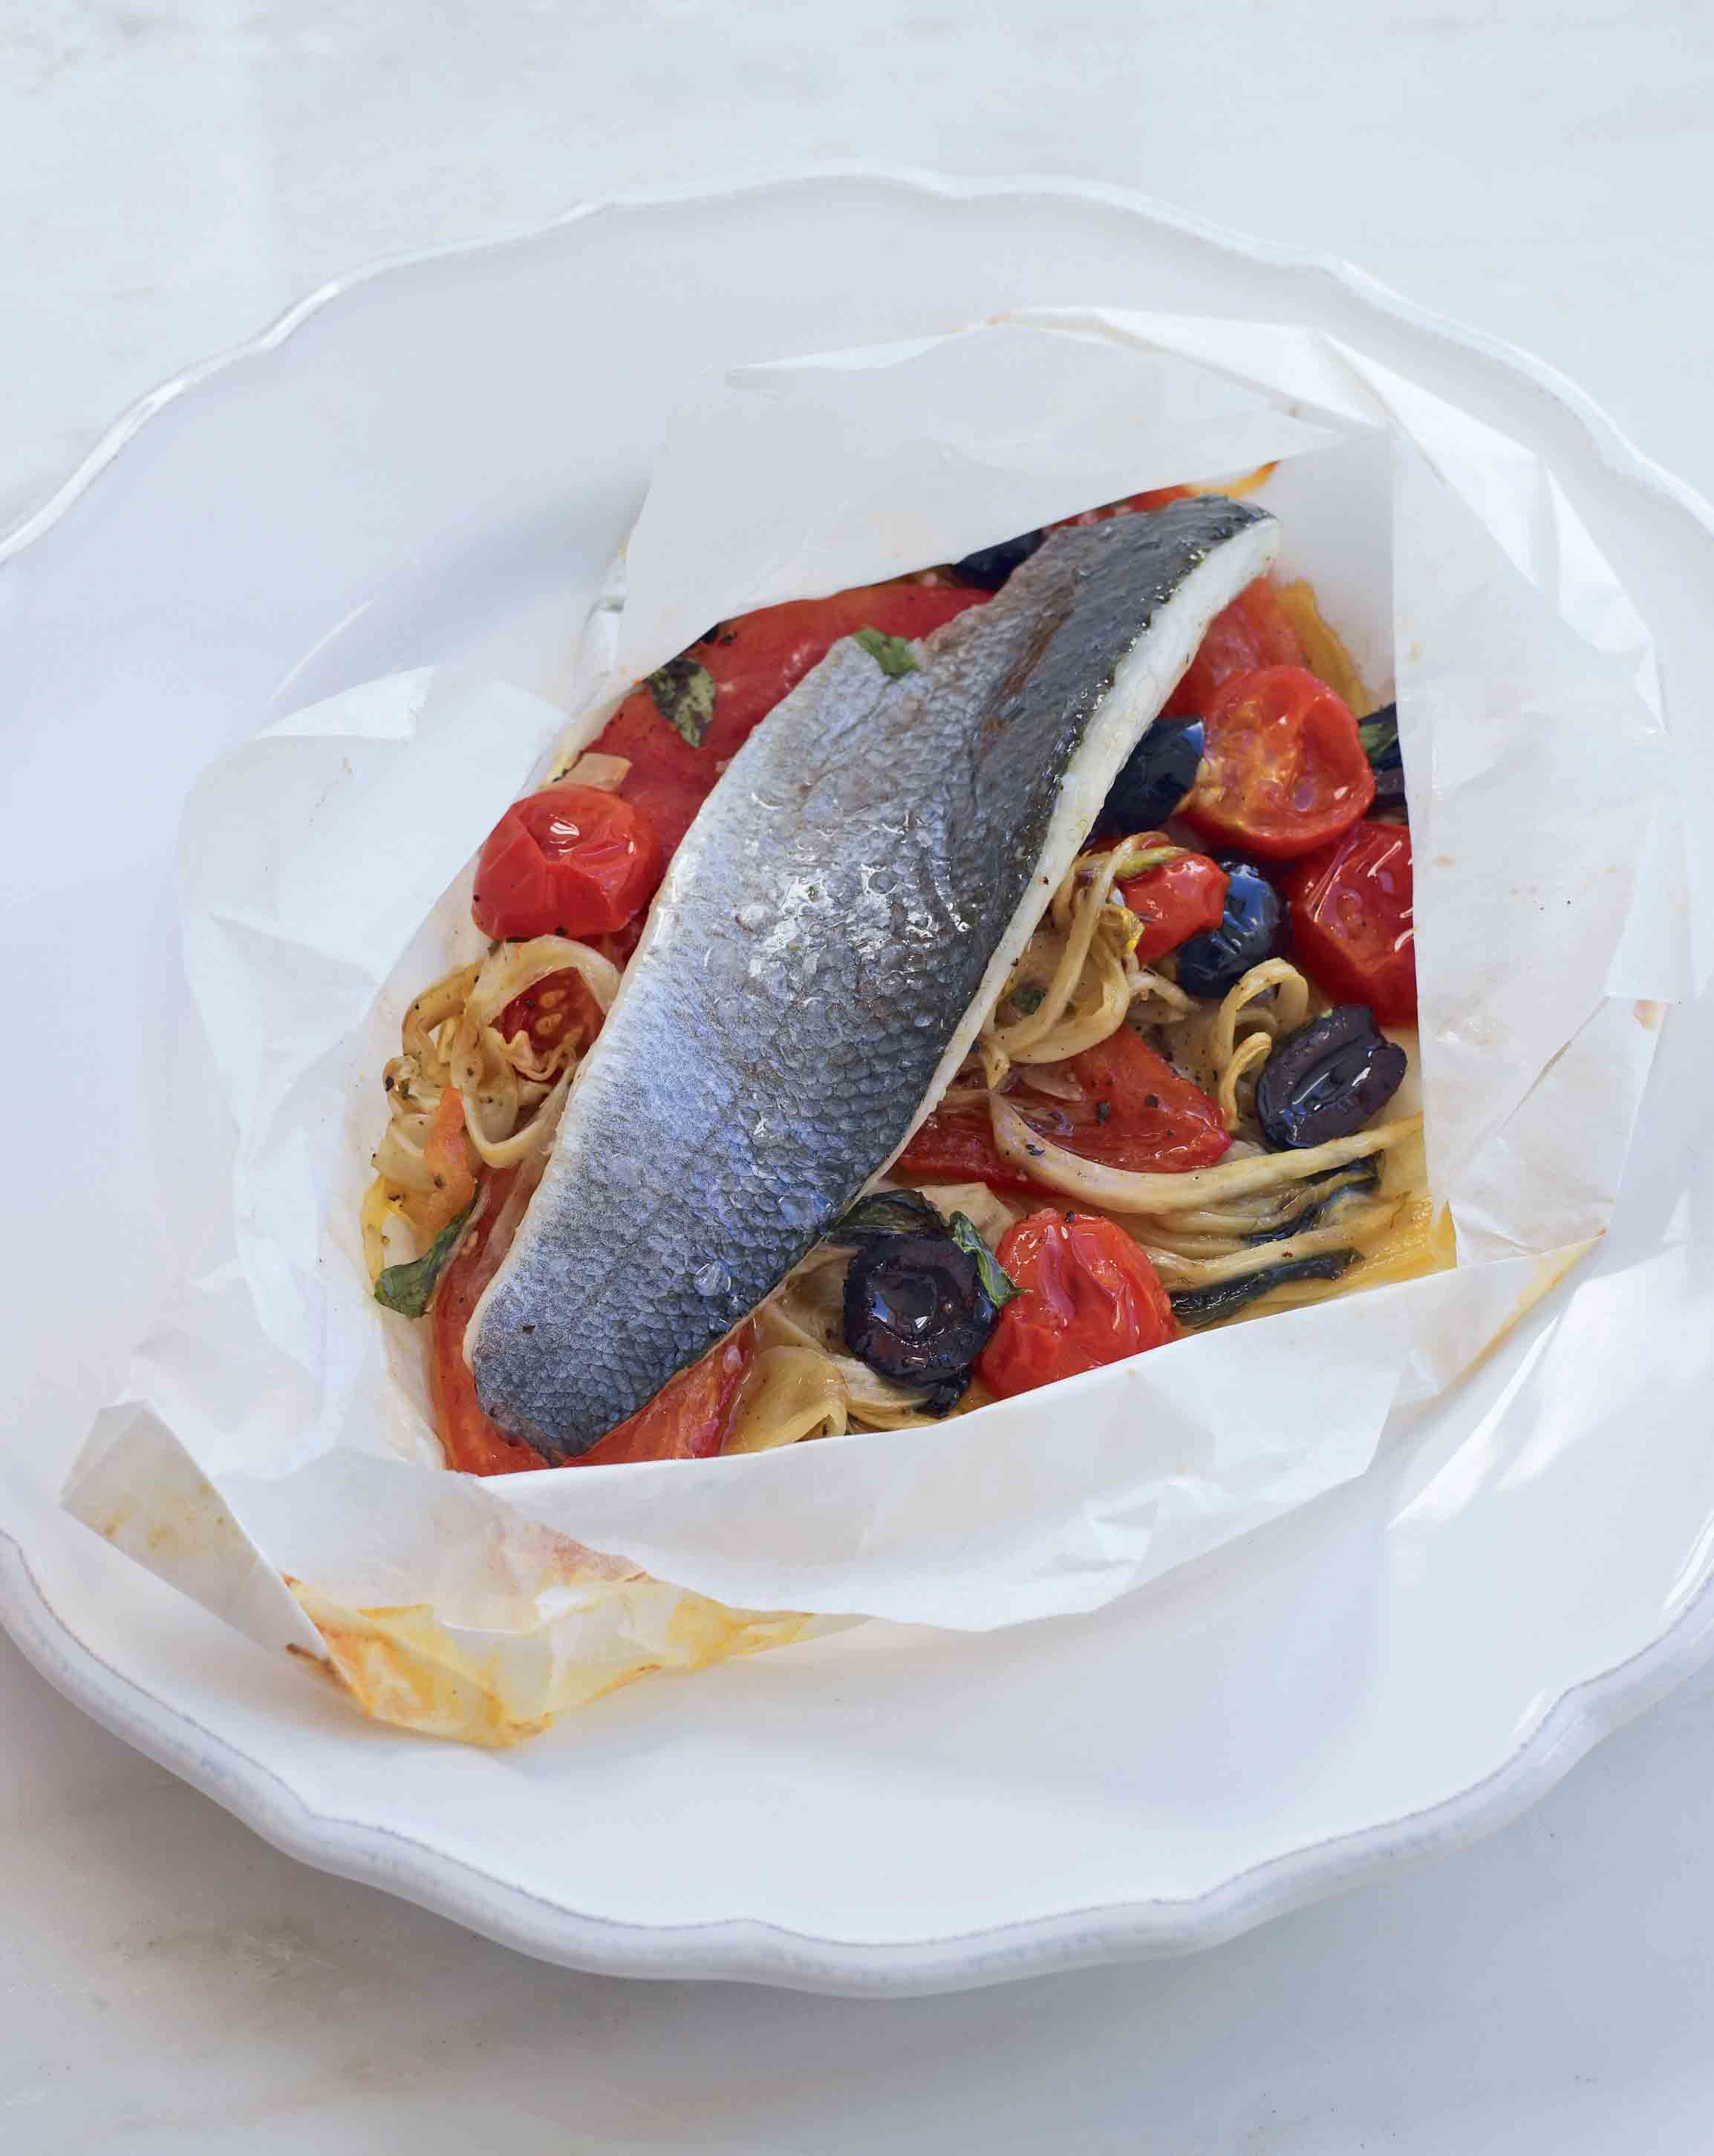 Sea bass en papillote with slow-cooked tomato and fennel